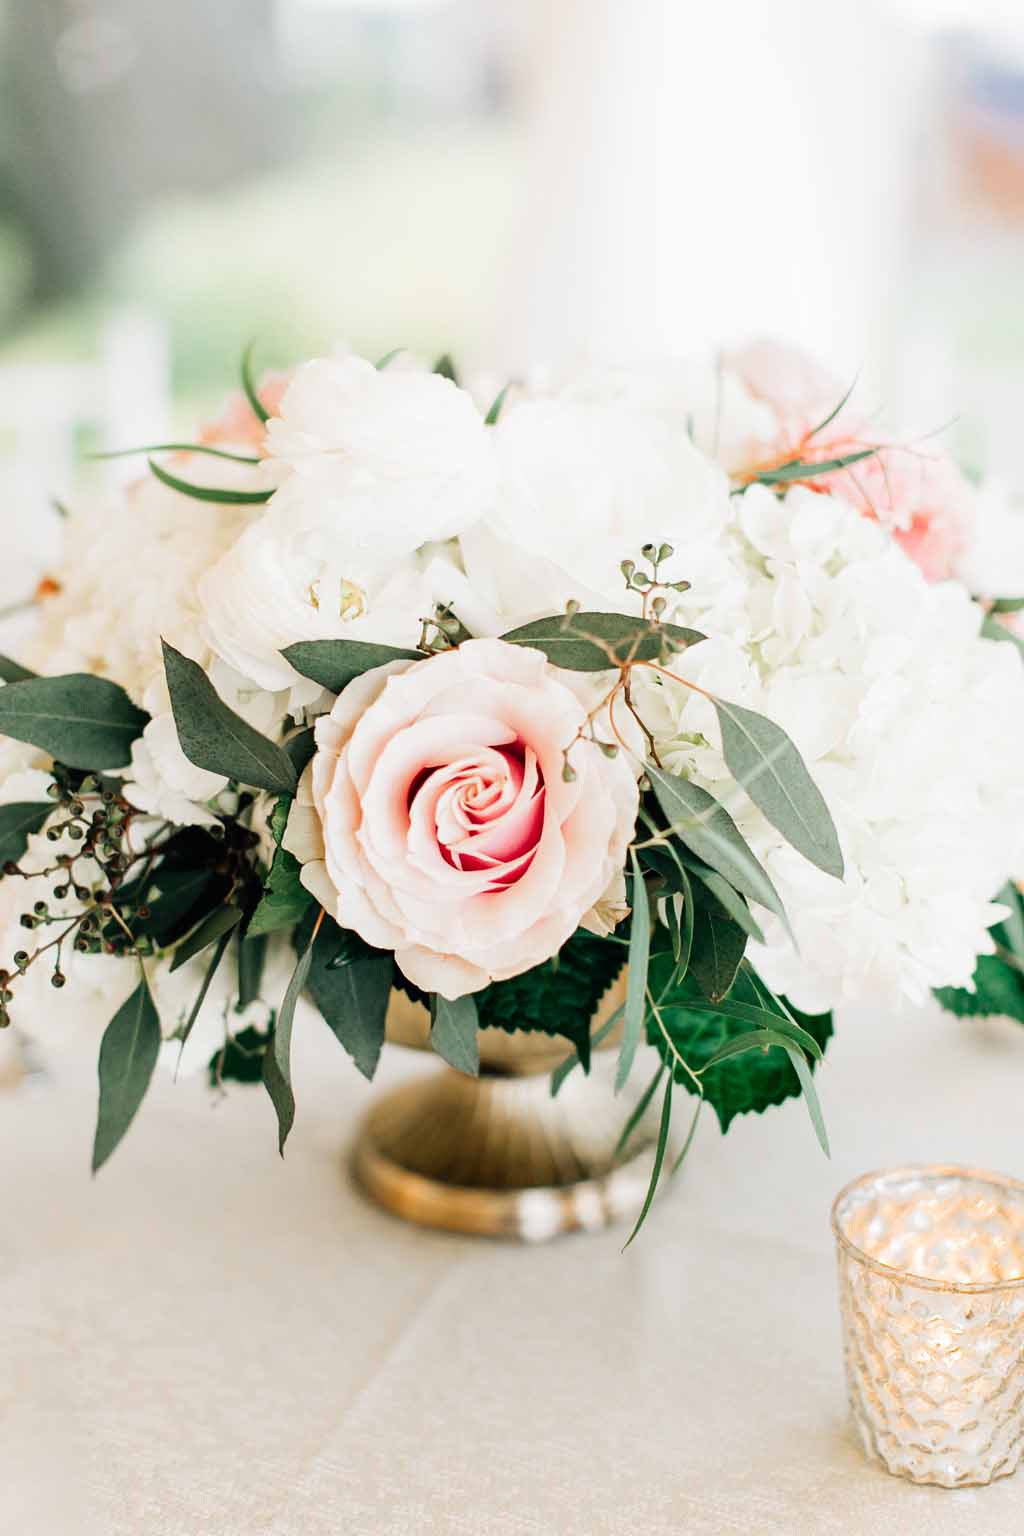 Centerpiece of peach roses, white peonies, white hydrangea, and eucalyptus greenery